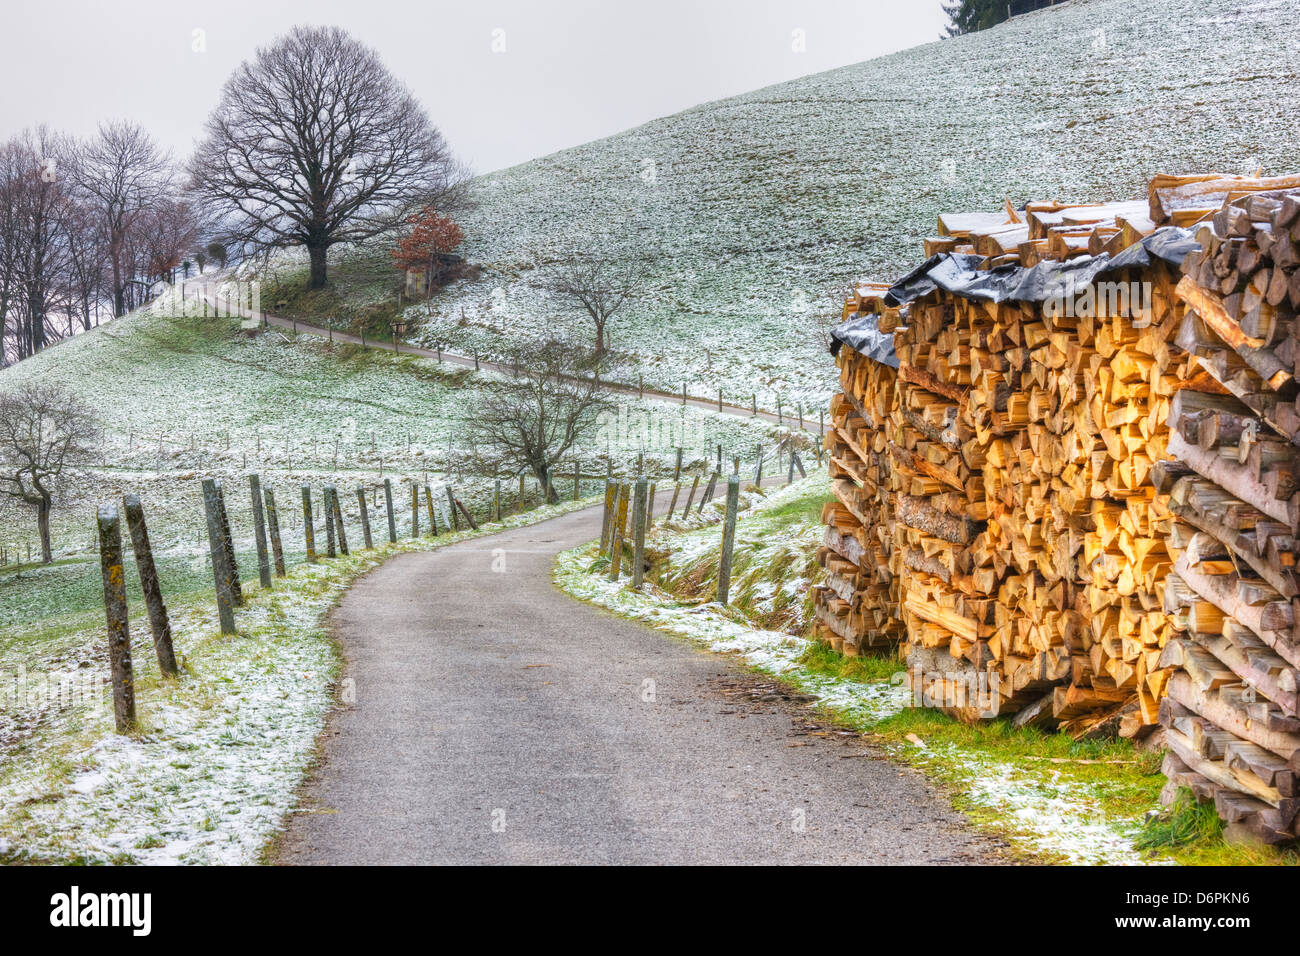 Winding road and wood pile near St. Trudpert Monastery, Munstertal, Black Forest, Baden-Wurttemberg, Germany, Europe - Stock Image